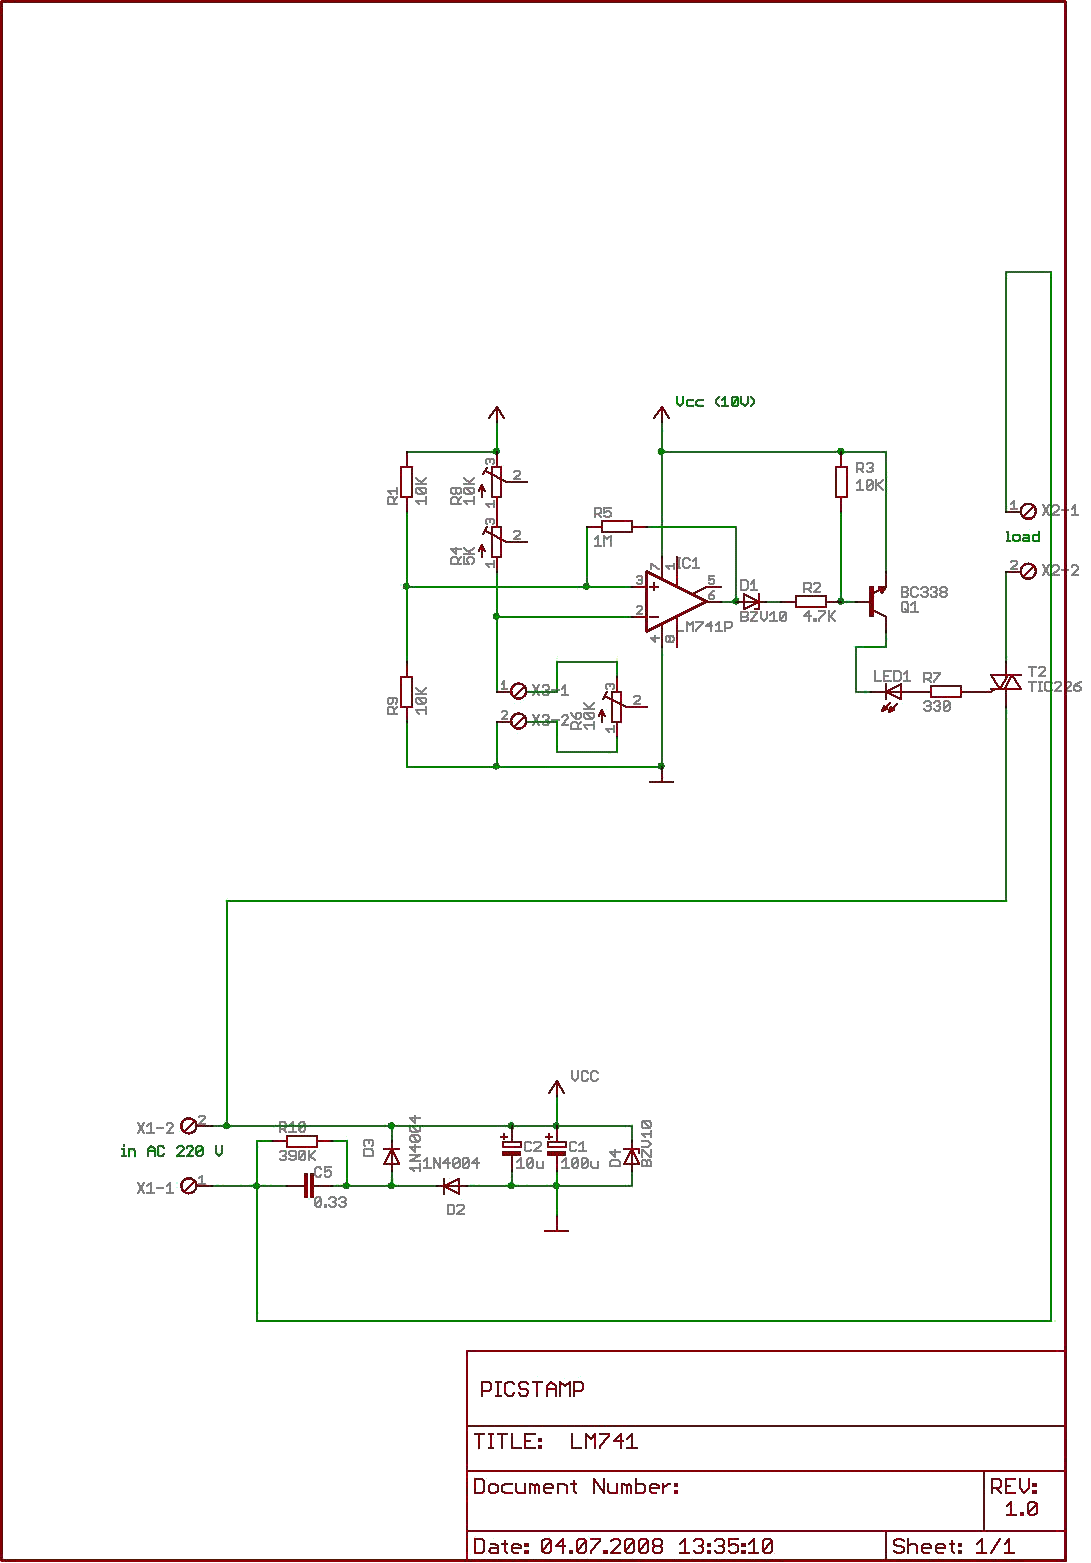 Craigs Thermostat Circuits Looking At Window Comparator Pcb Design